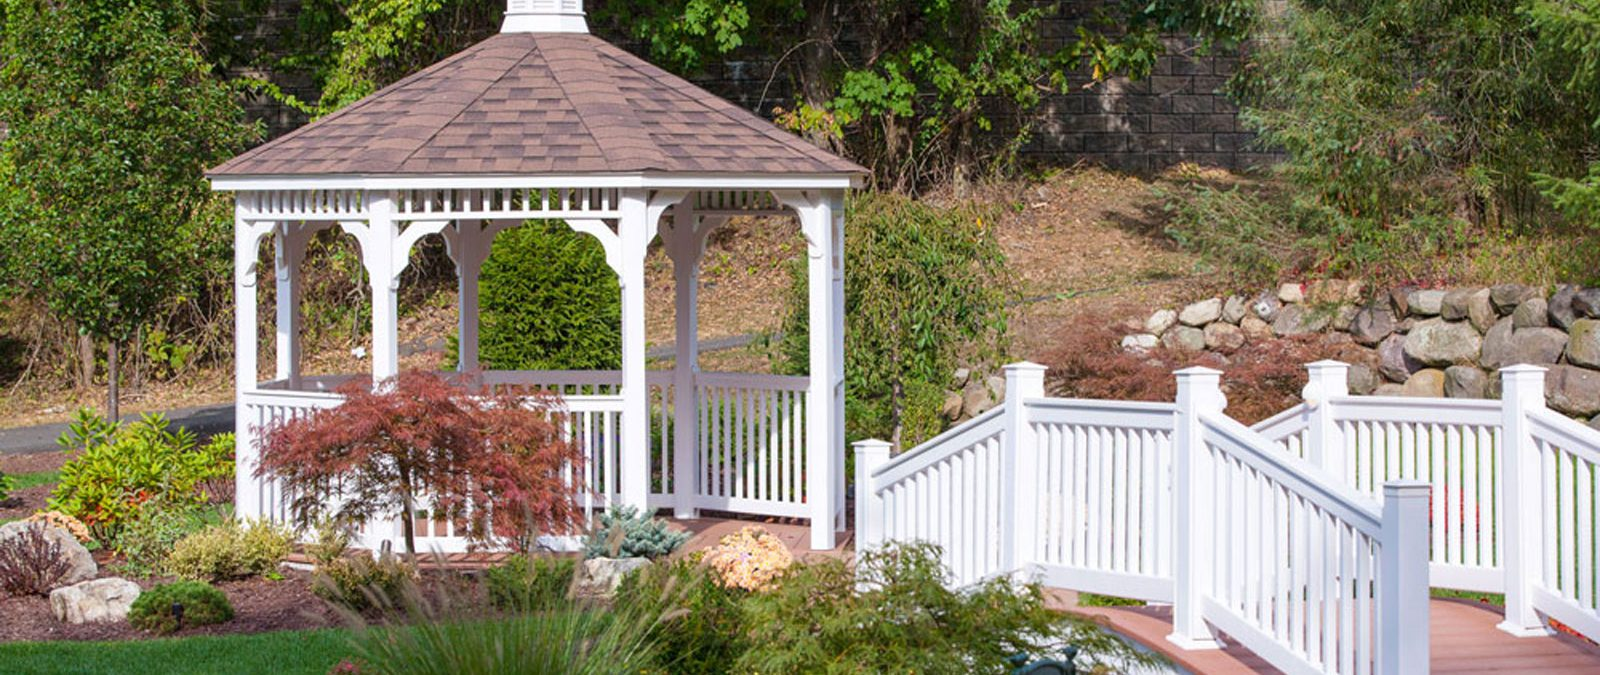 garden gazebo for sale